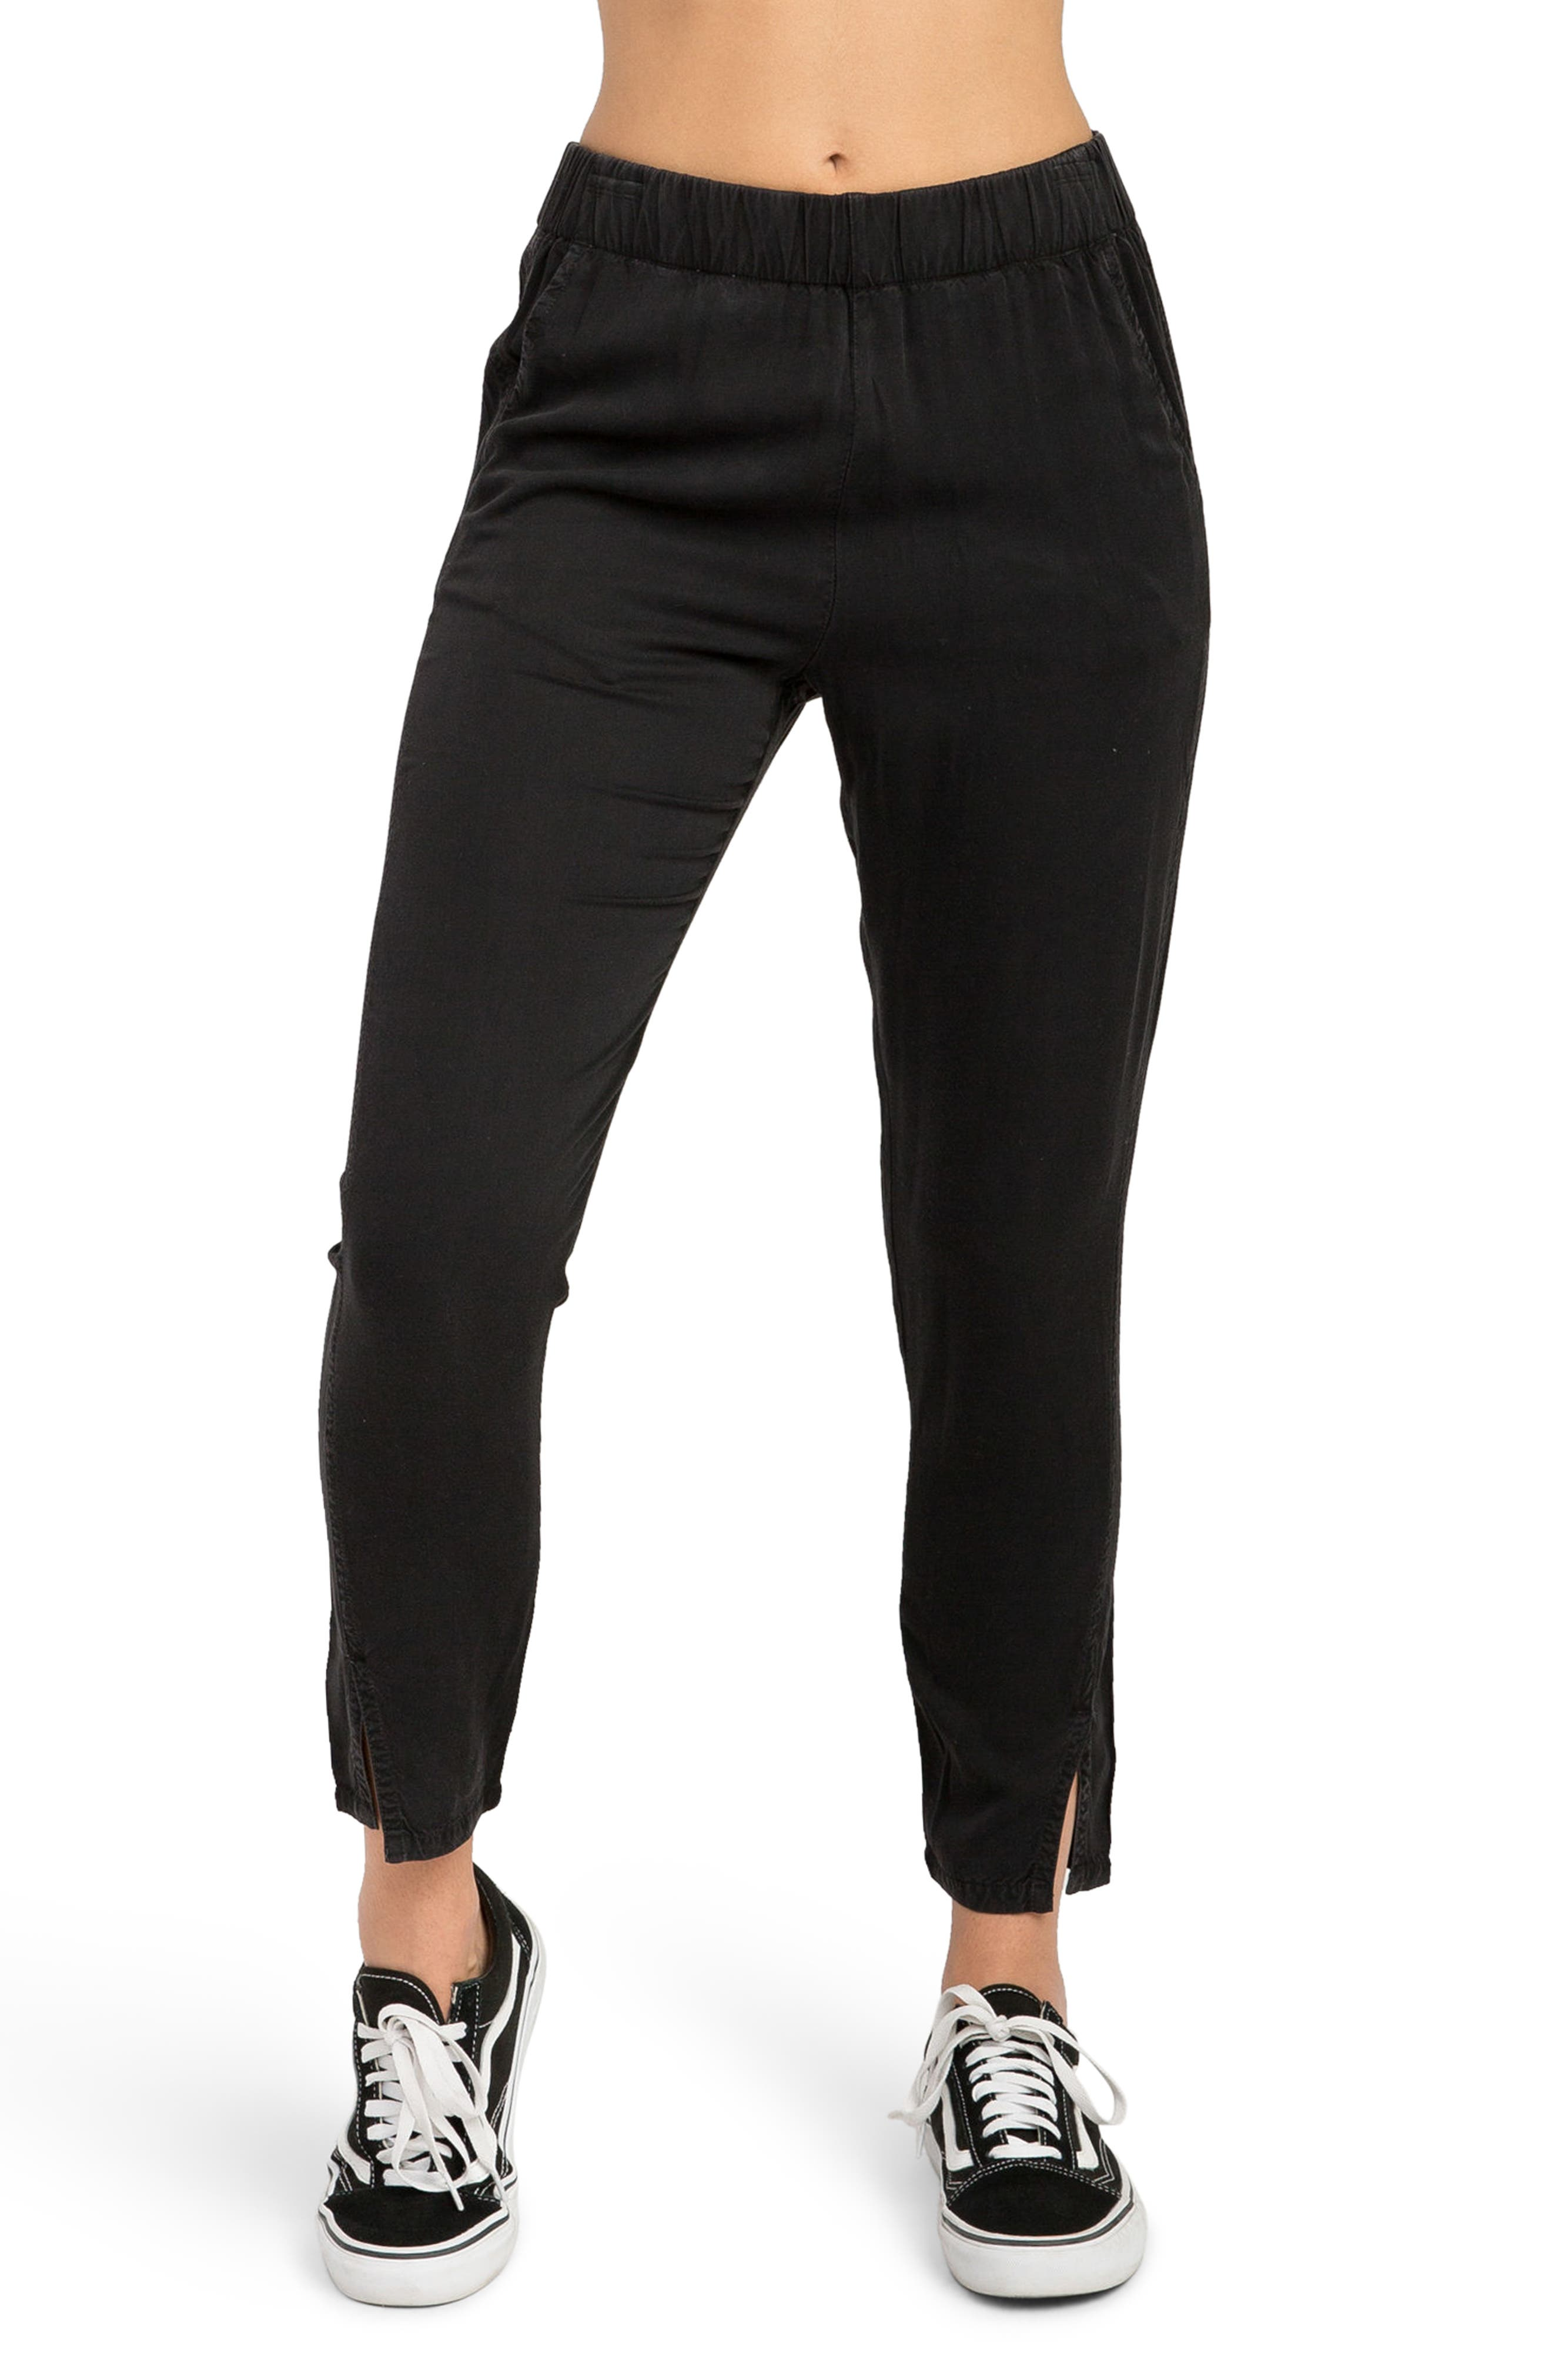 Chill Vibes Ankle Pants,                         Main,                         color, 001